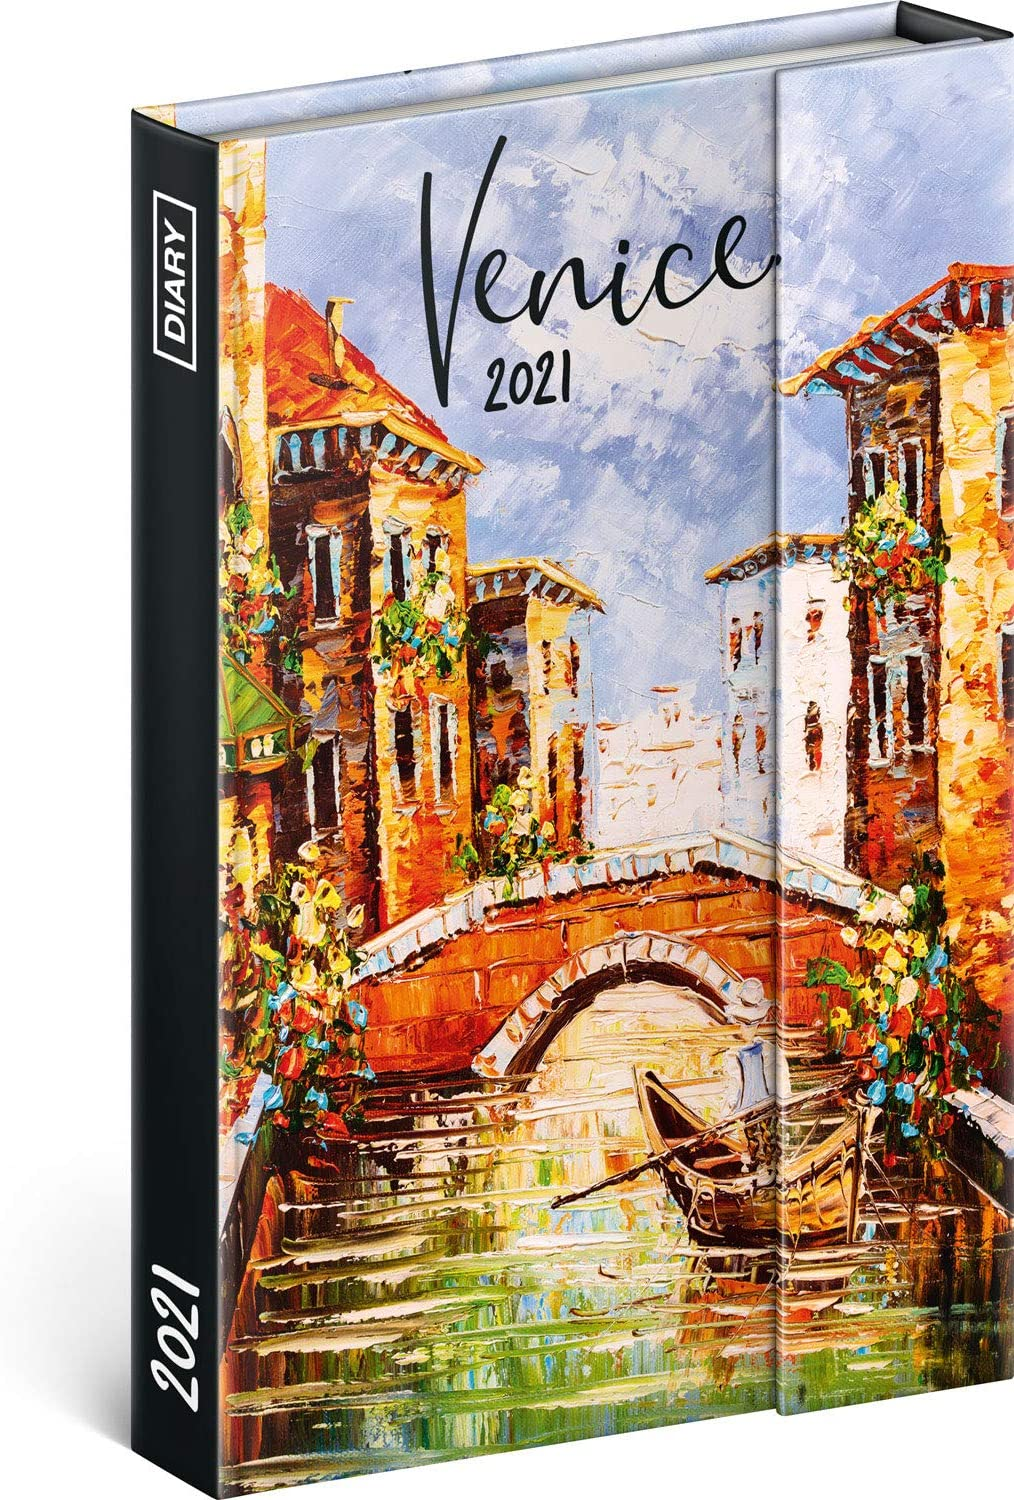 2021 Weekly Planner for Women, Pocket Calendar Organizer Notebook Magnetic Closure, Daily Appointment Book (Venice)